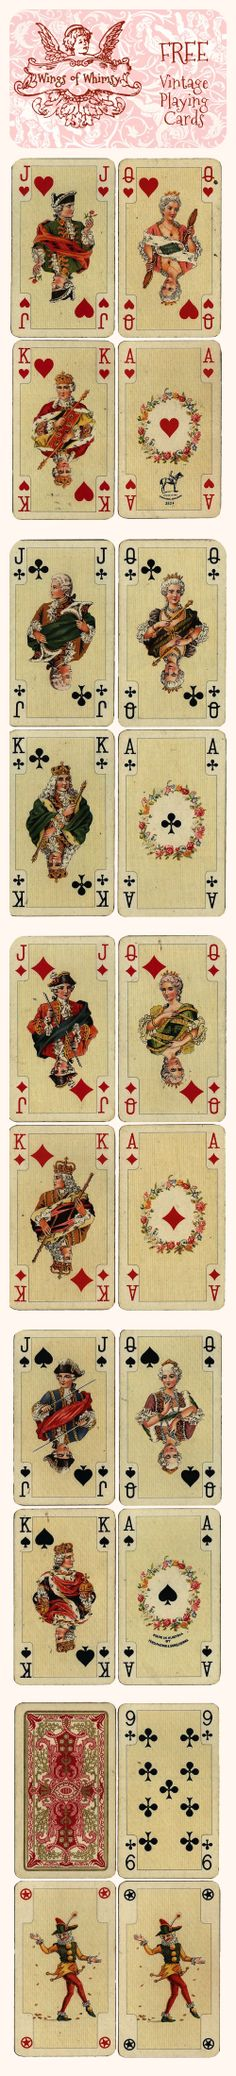 Vintage French Playing Cards * 1500 free paper dolls at Arielle Gabriel's The International Paper Doll Society for paper doll pals at Pinterest *